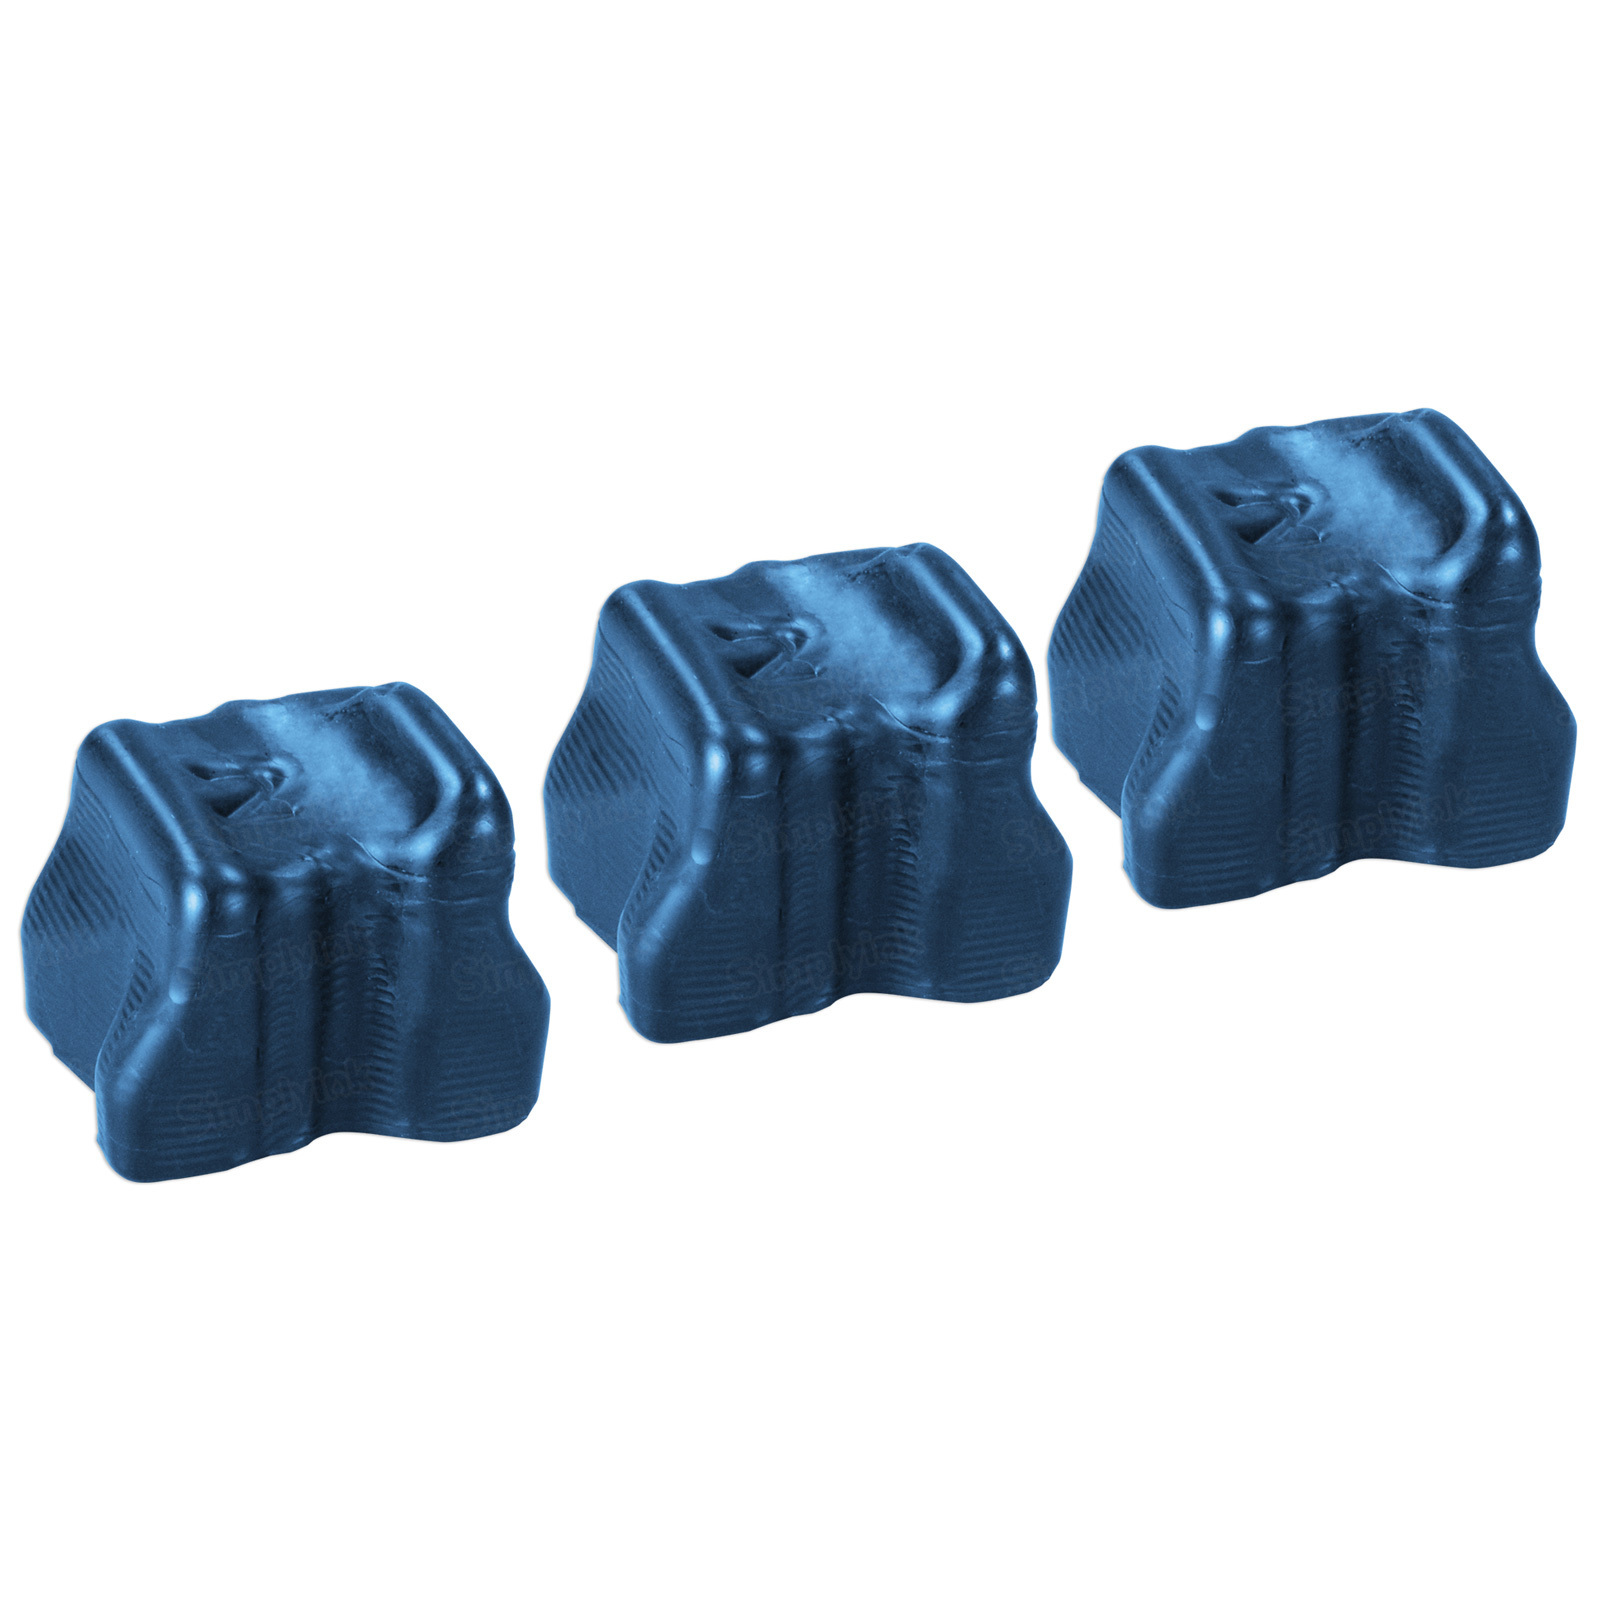 Compatible Xerox 108R00669 Cyan 3-Pack Solid Ink for the Phaser 8500